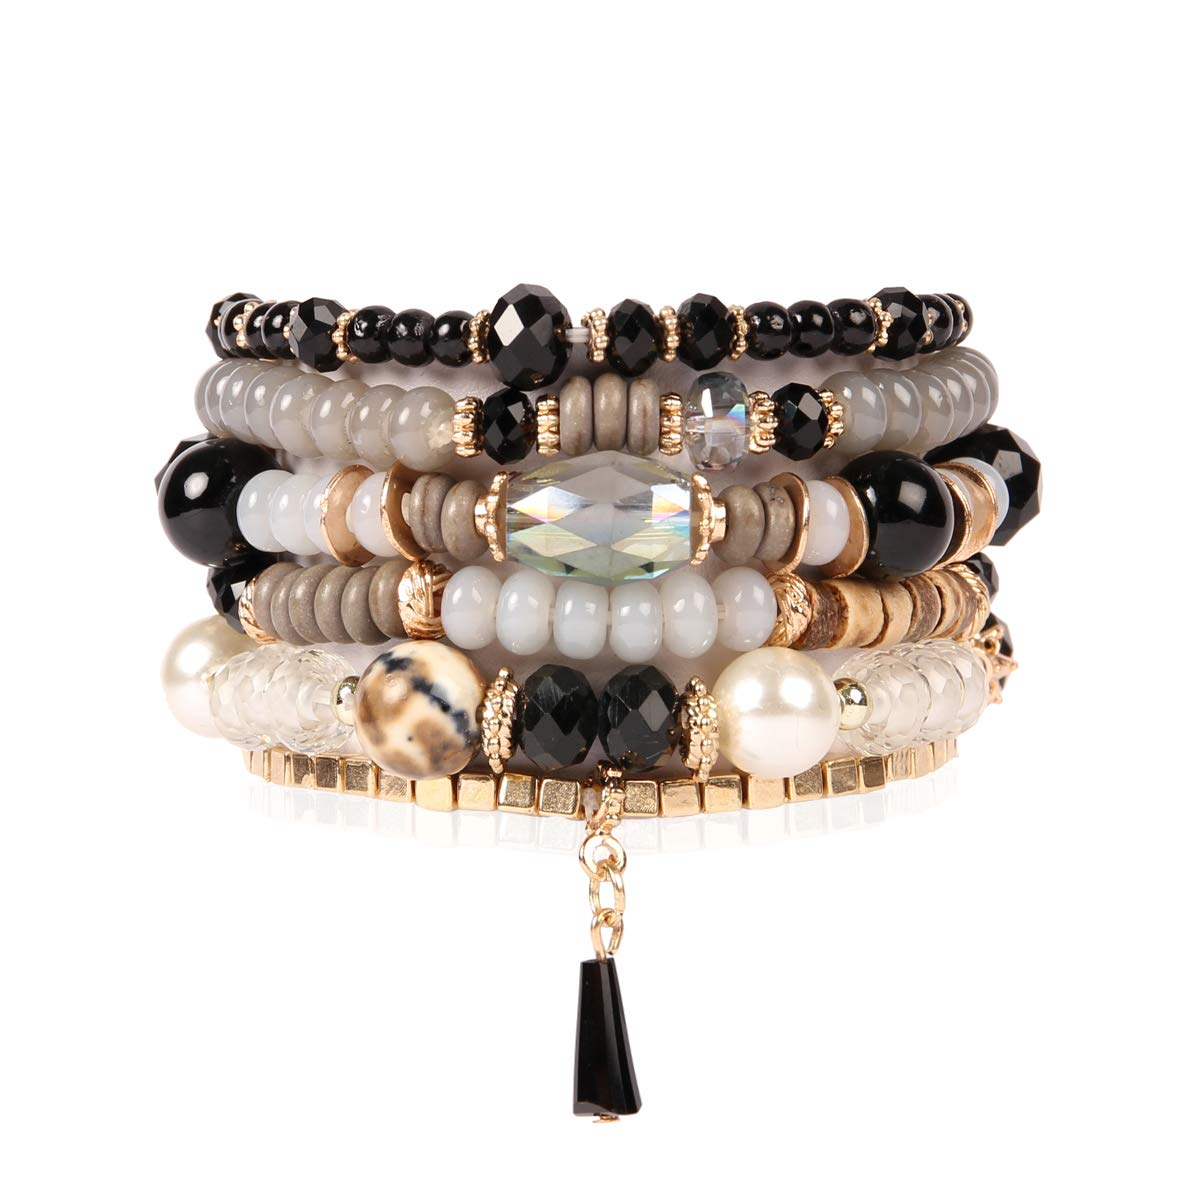 RIAH FASHION Bead Multi Layer Versatile Statement Bracelets - Stackable Beaded Strand Stretch Bangles Sparkly Crystal, Tassel Charm (Crystal Bead Mix - Black)